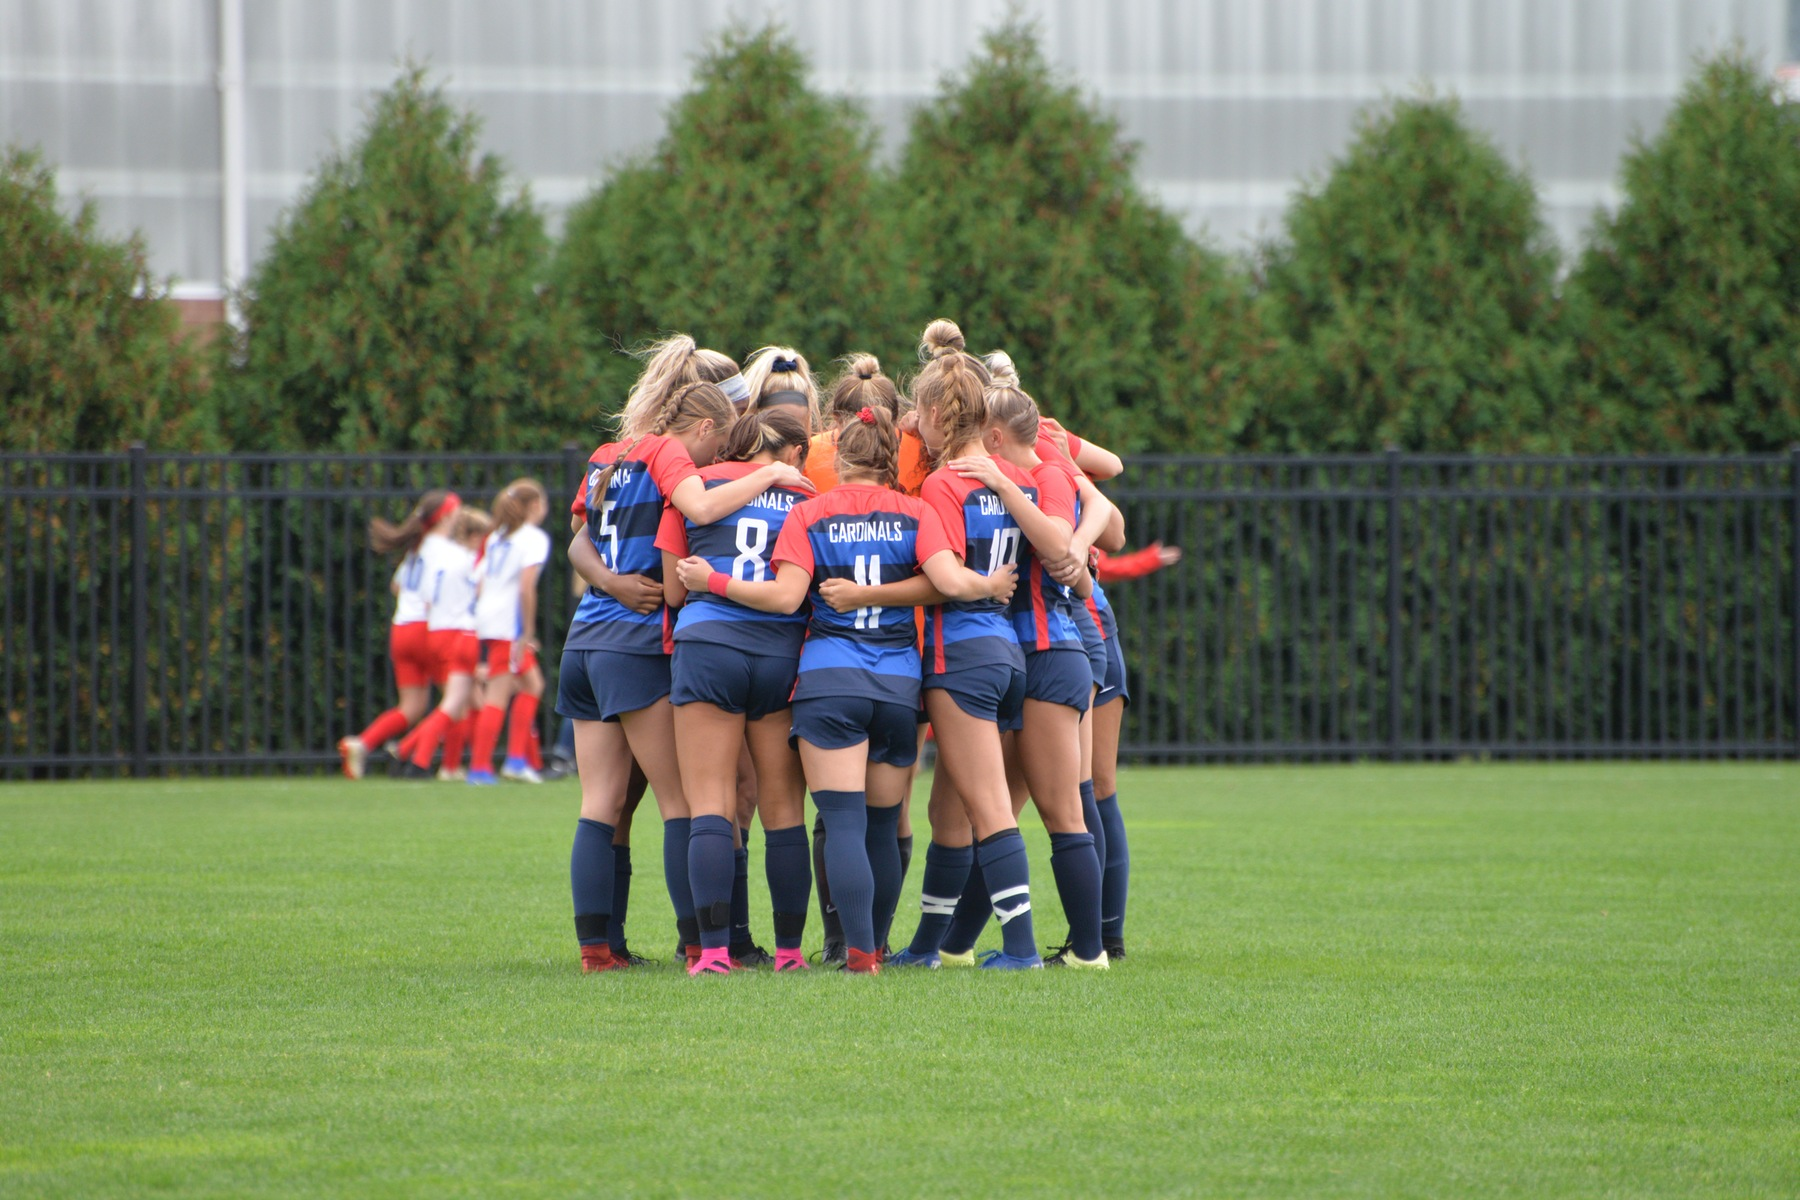 SVSU moves to 6-1 in GLIAC play with shutout over Davenport